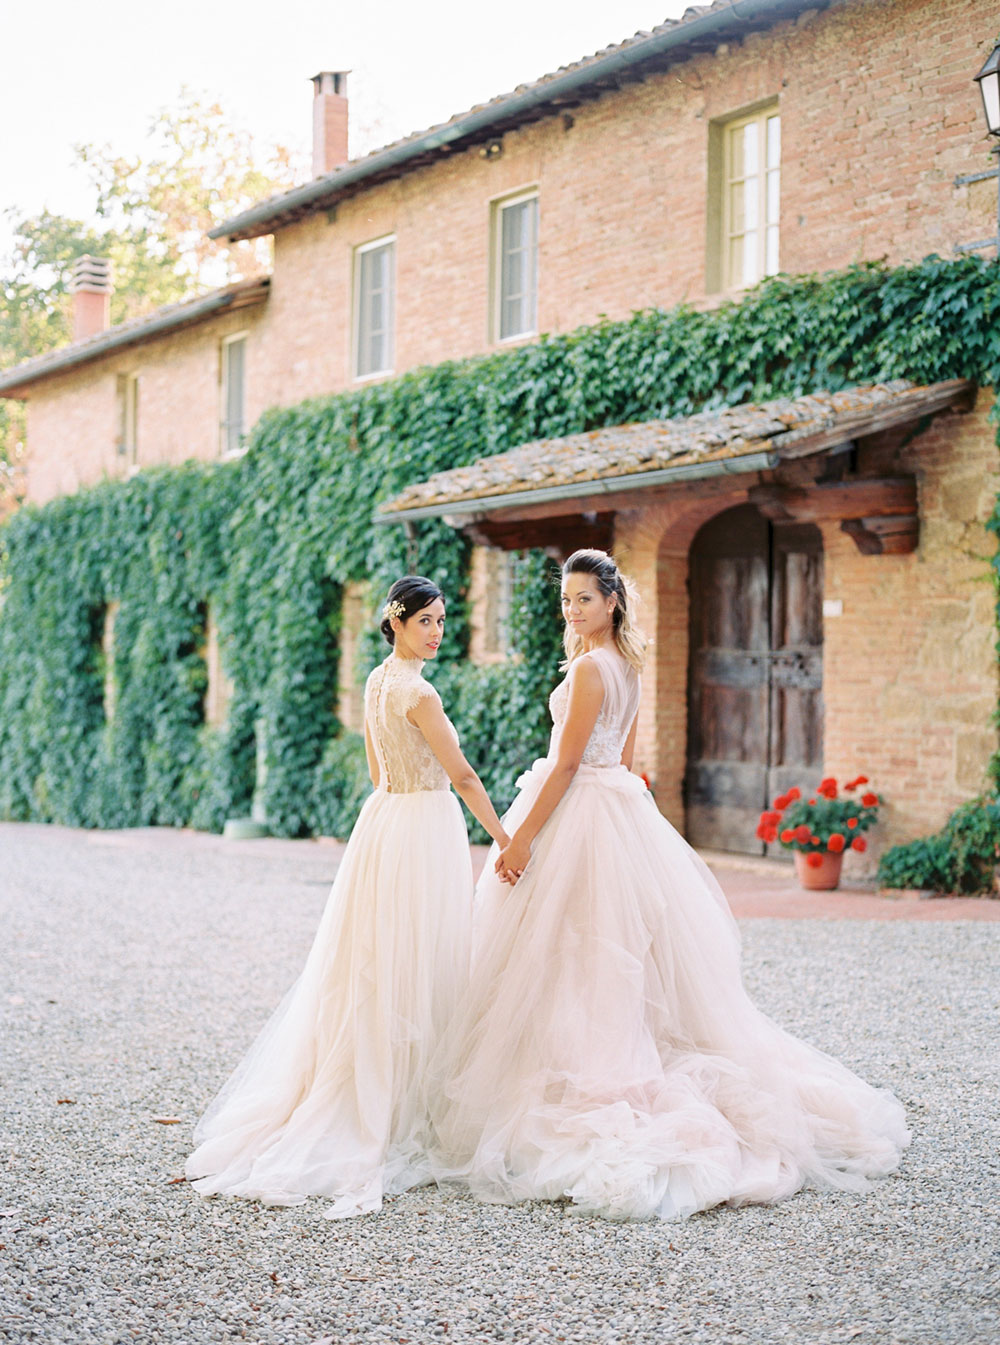 Linari-Tuscany-Elopement-Courtney-Michaela-147